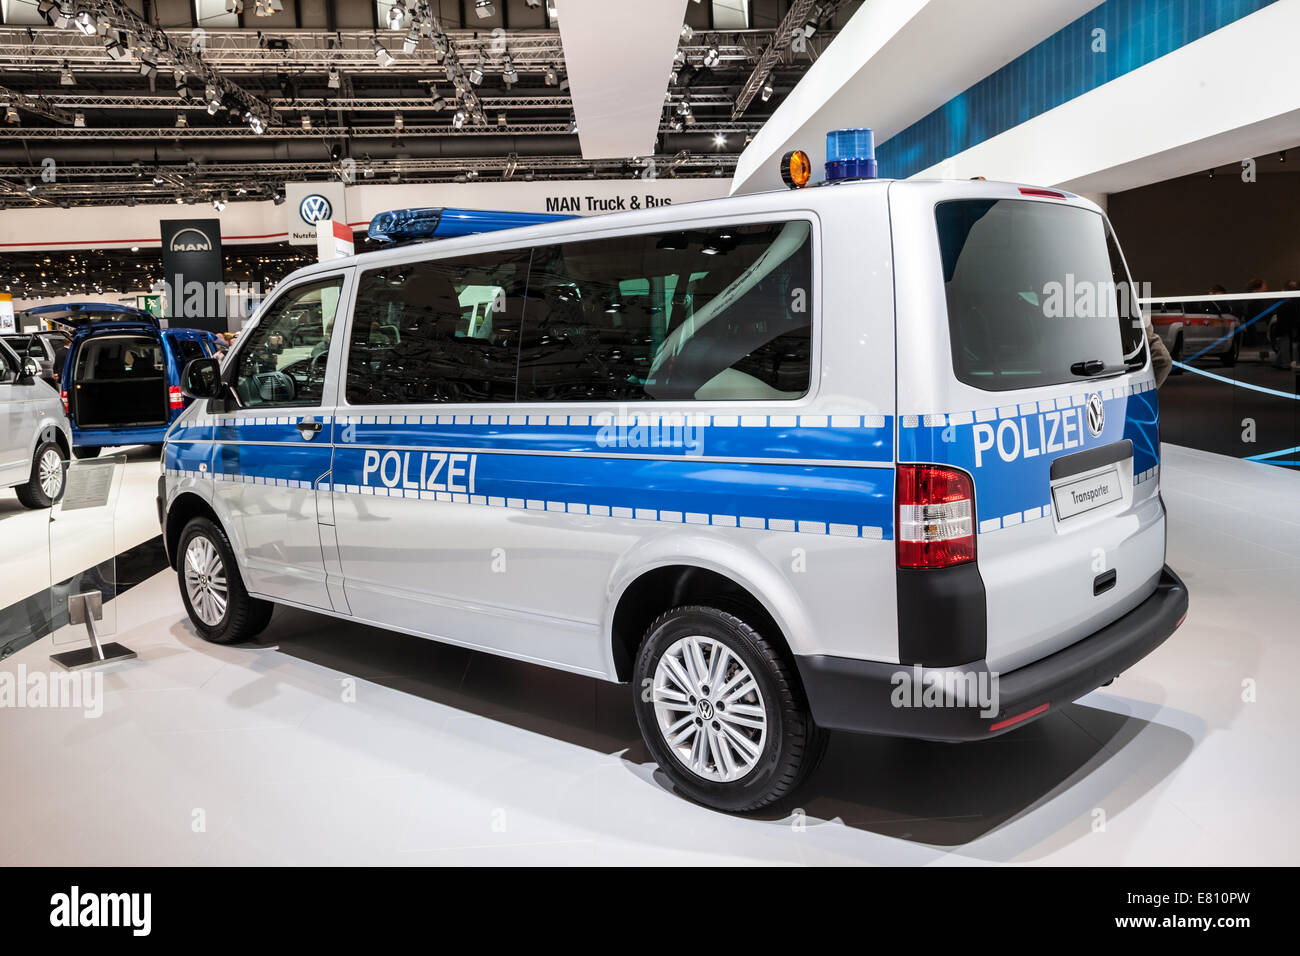 New VW Transporter Polizei edition at the 65th IAA Commercial Vehicles fair 2014 in Hannover, Germany - Stock Image